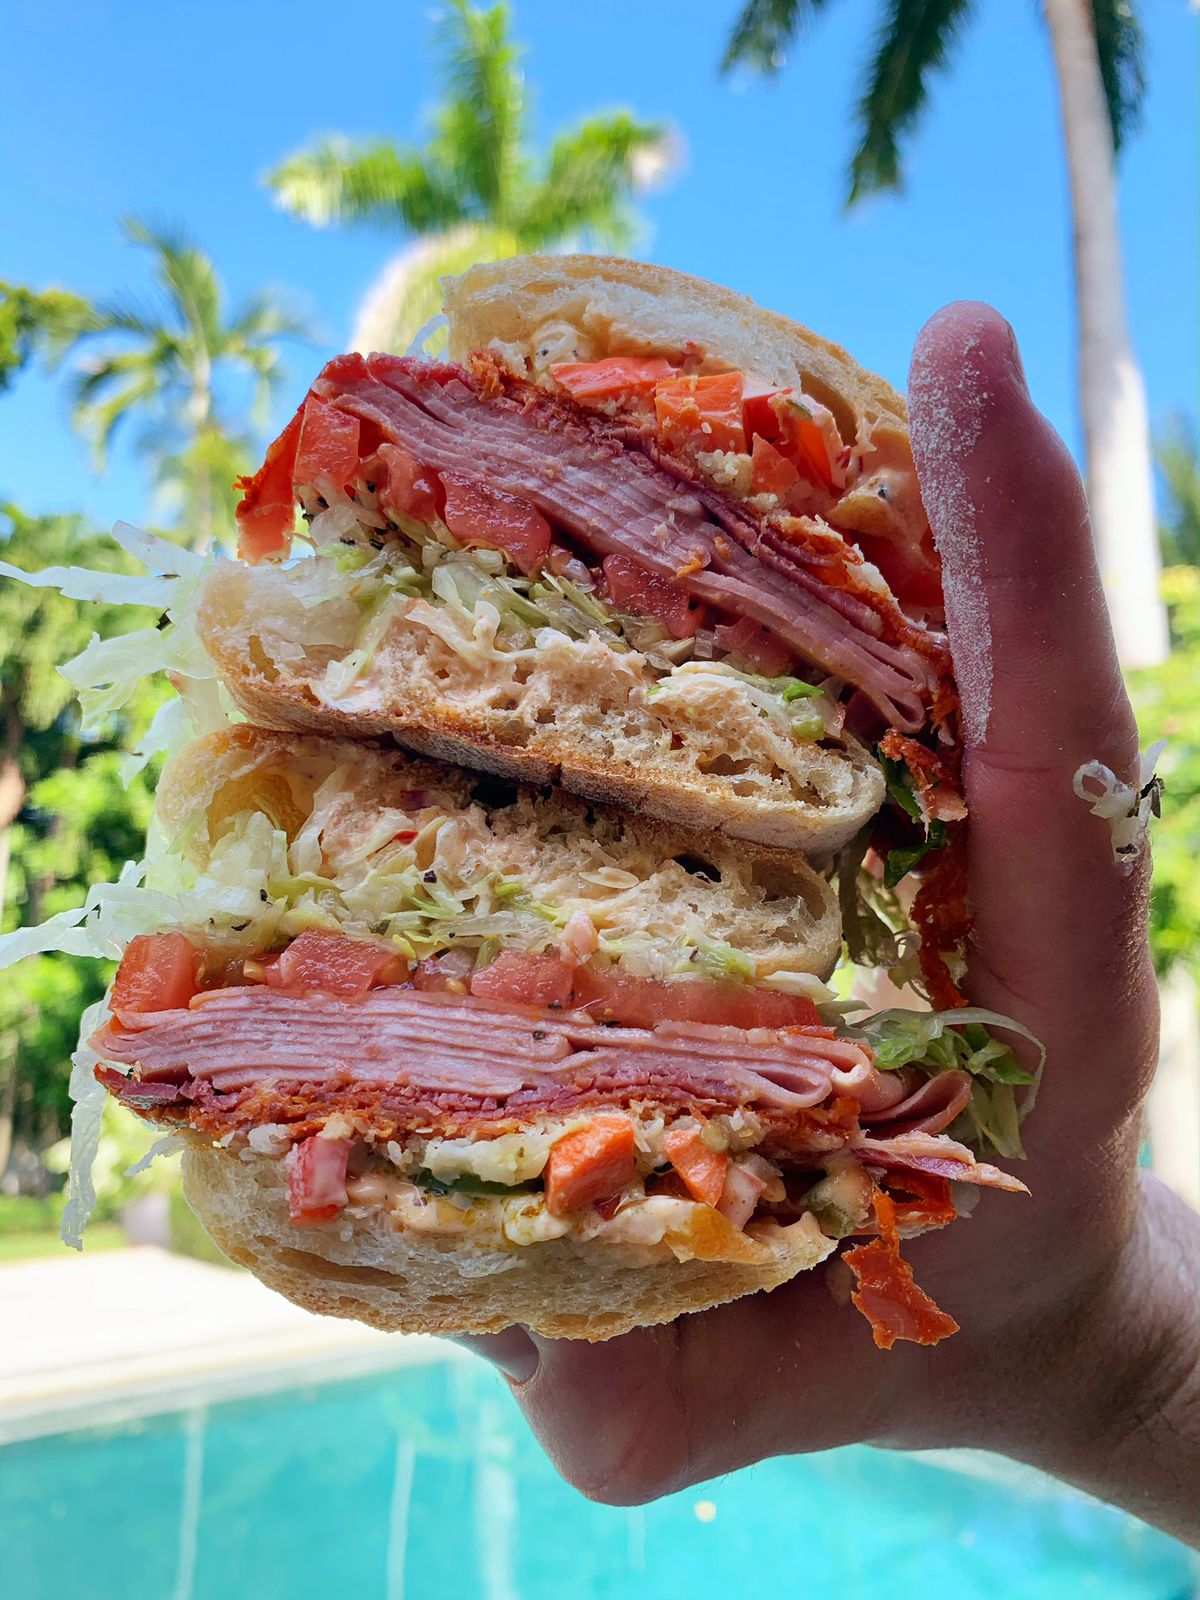 A hand is holding a sandwich with multiple layers of meat, tomatoes, and greens. A pool can be seen in the background